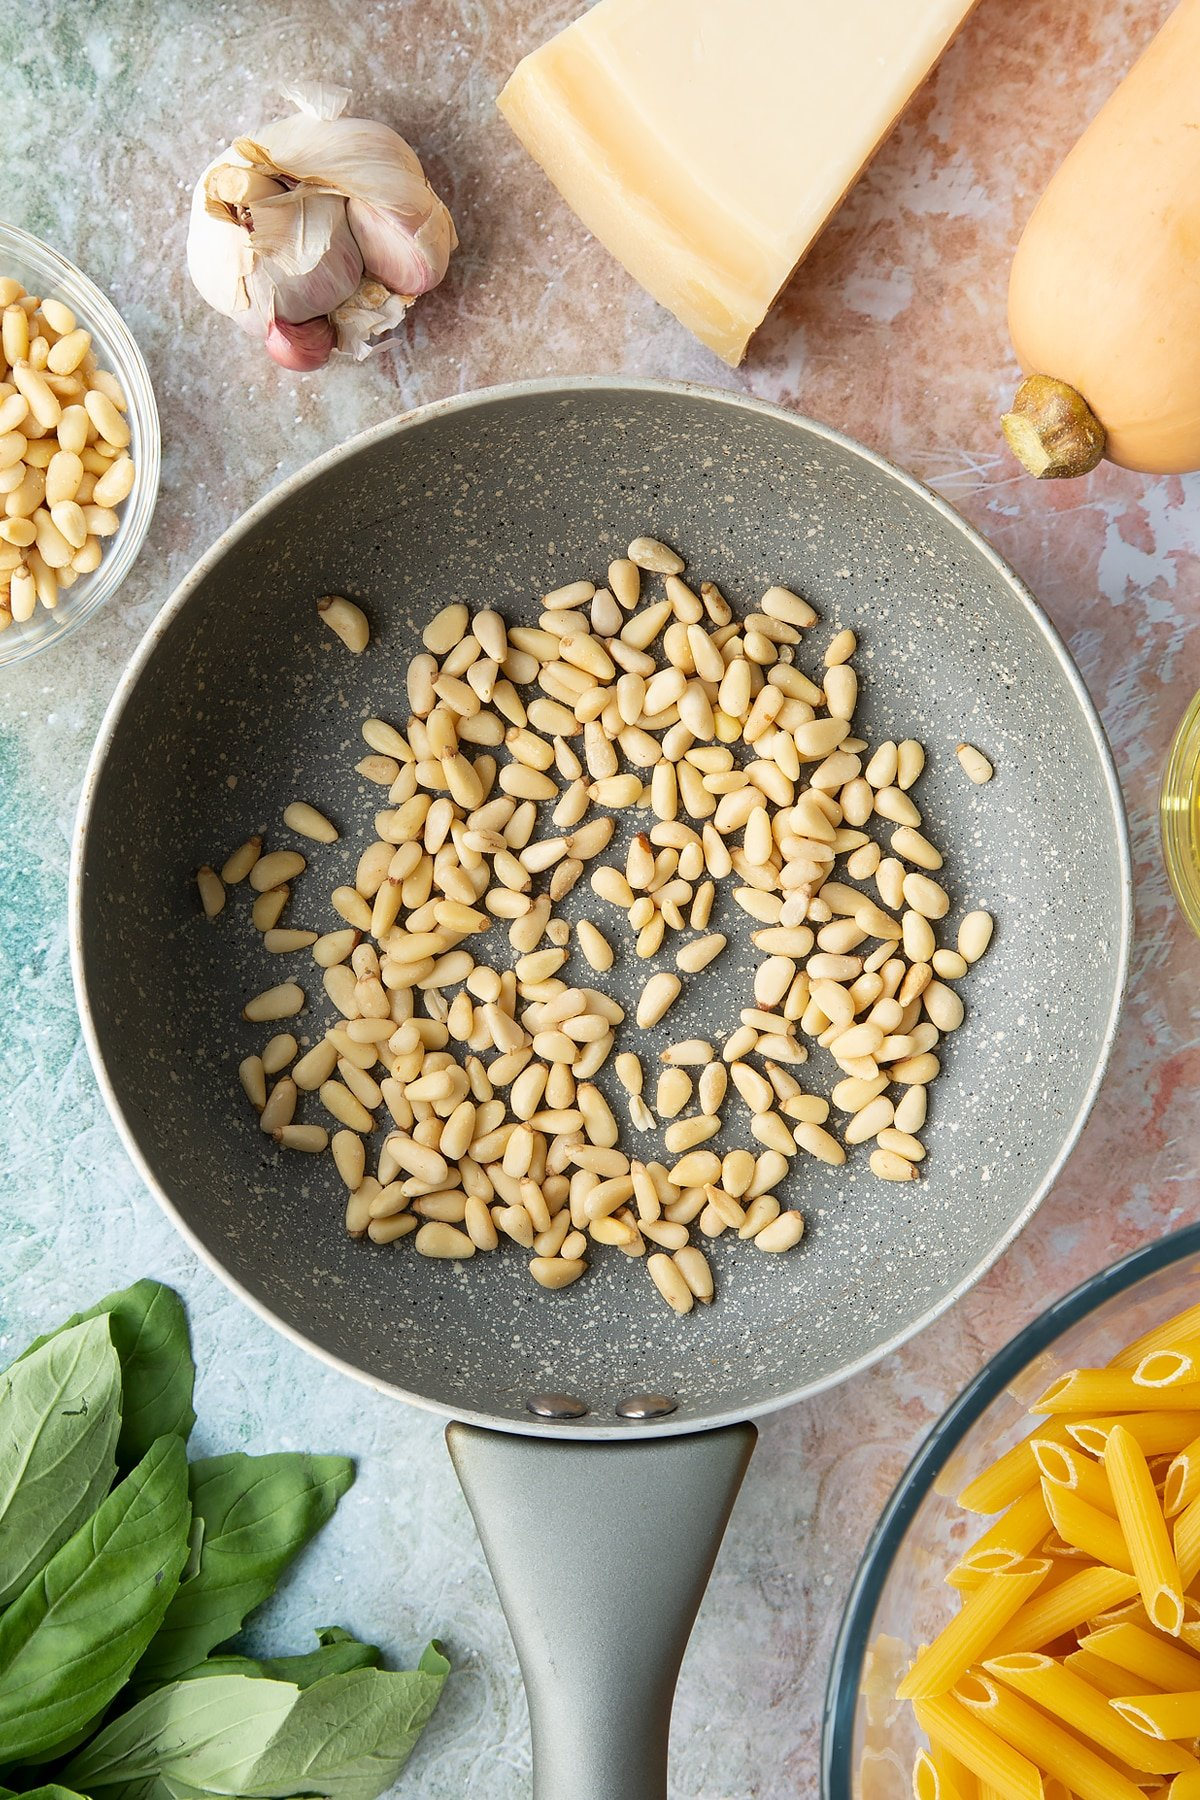 Pine nuts in a small frying pan. Ingredients to make penne with butternut squash and goat cheese surround the pan.